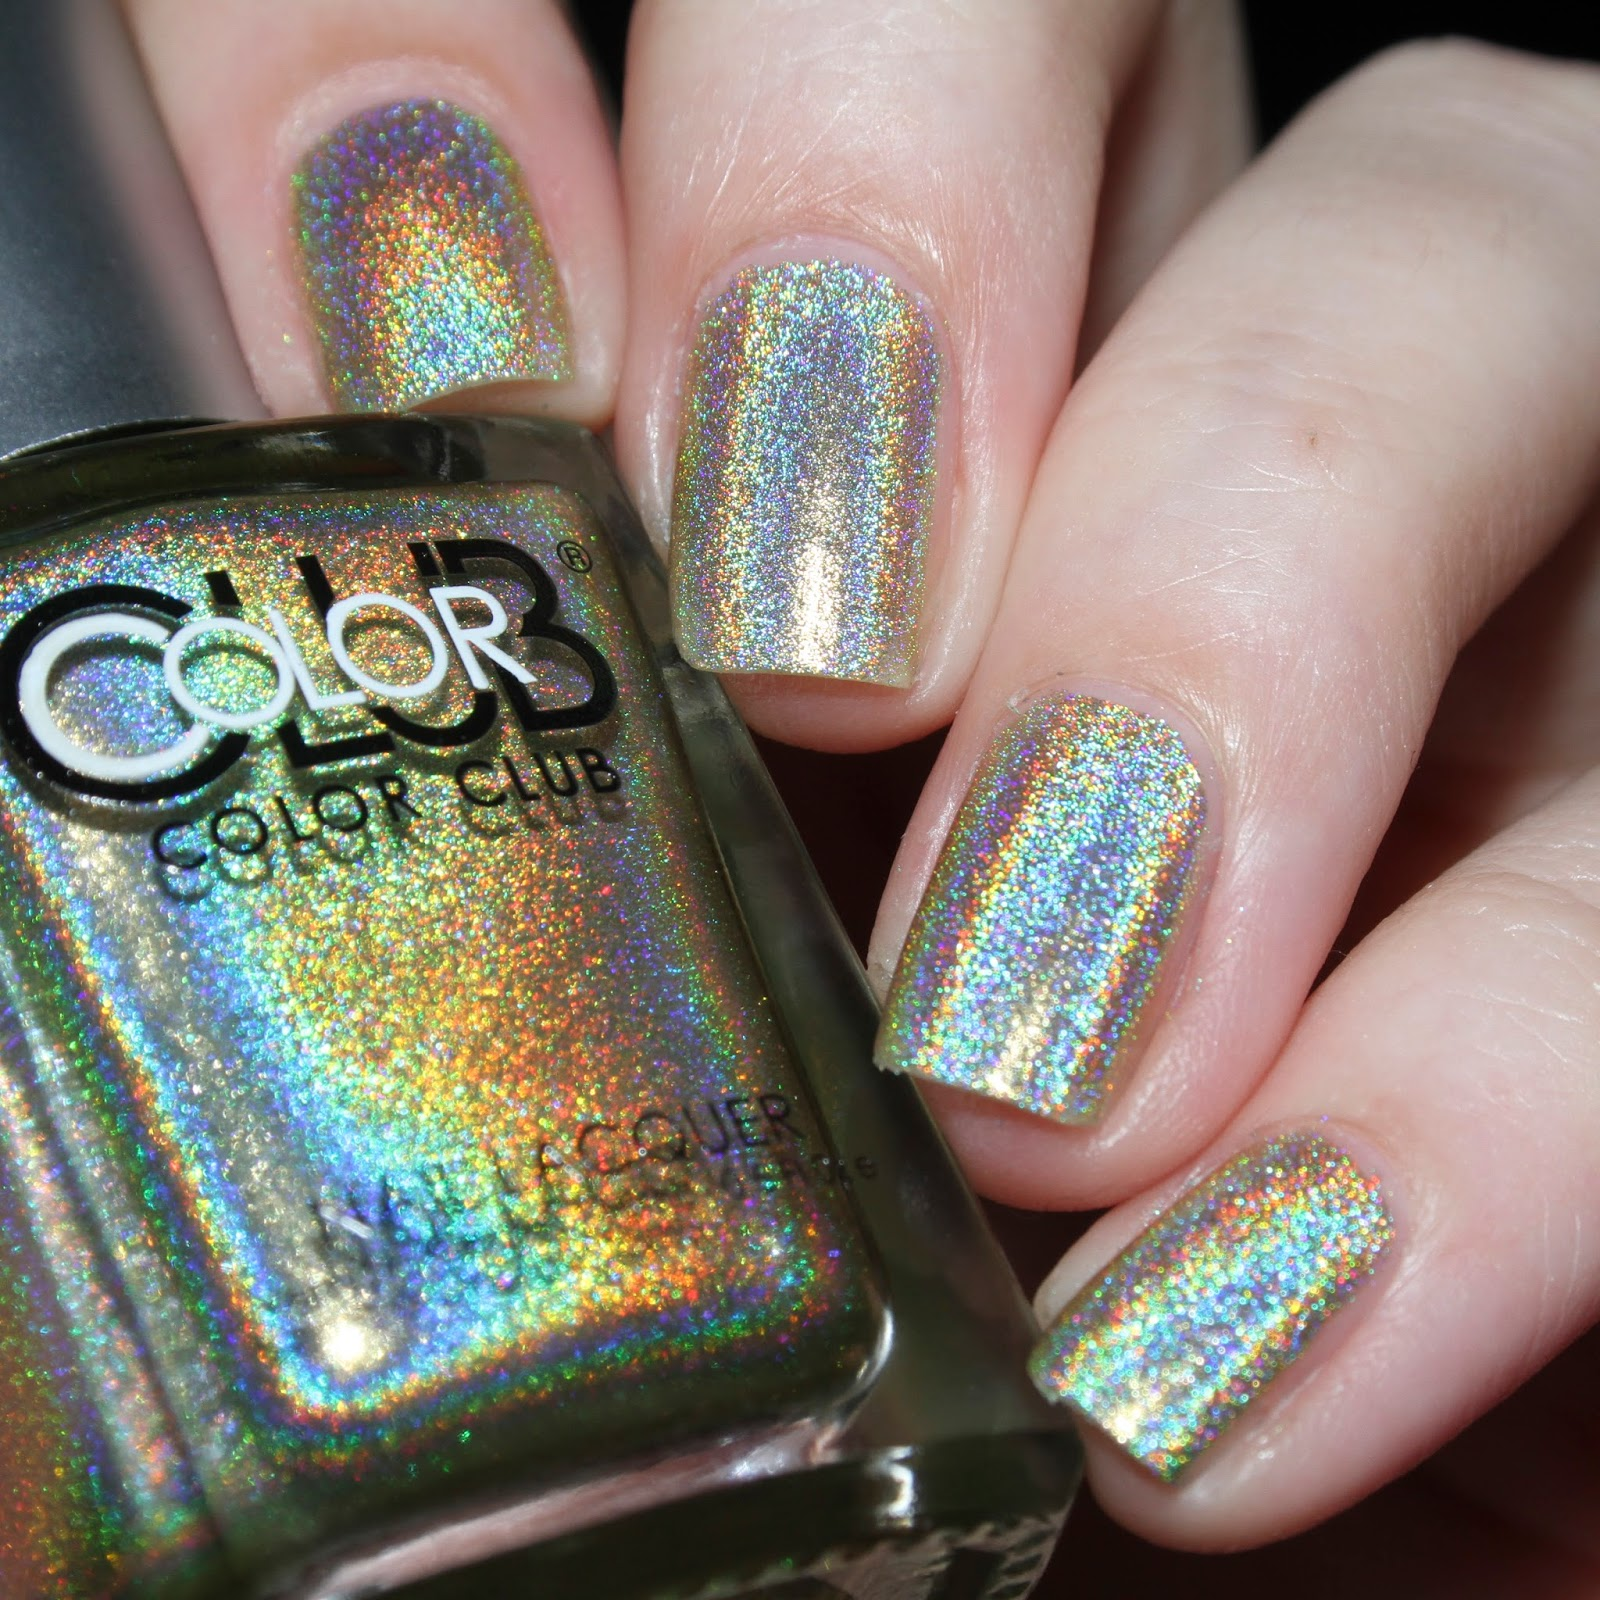 Color Club Holographic Nail Polish Swatches: Elaine Nails: Color Club Halo Hues 2013 Holographic Swatches